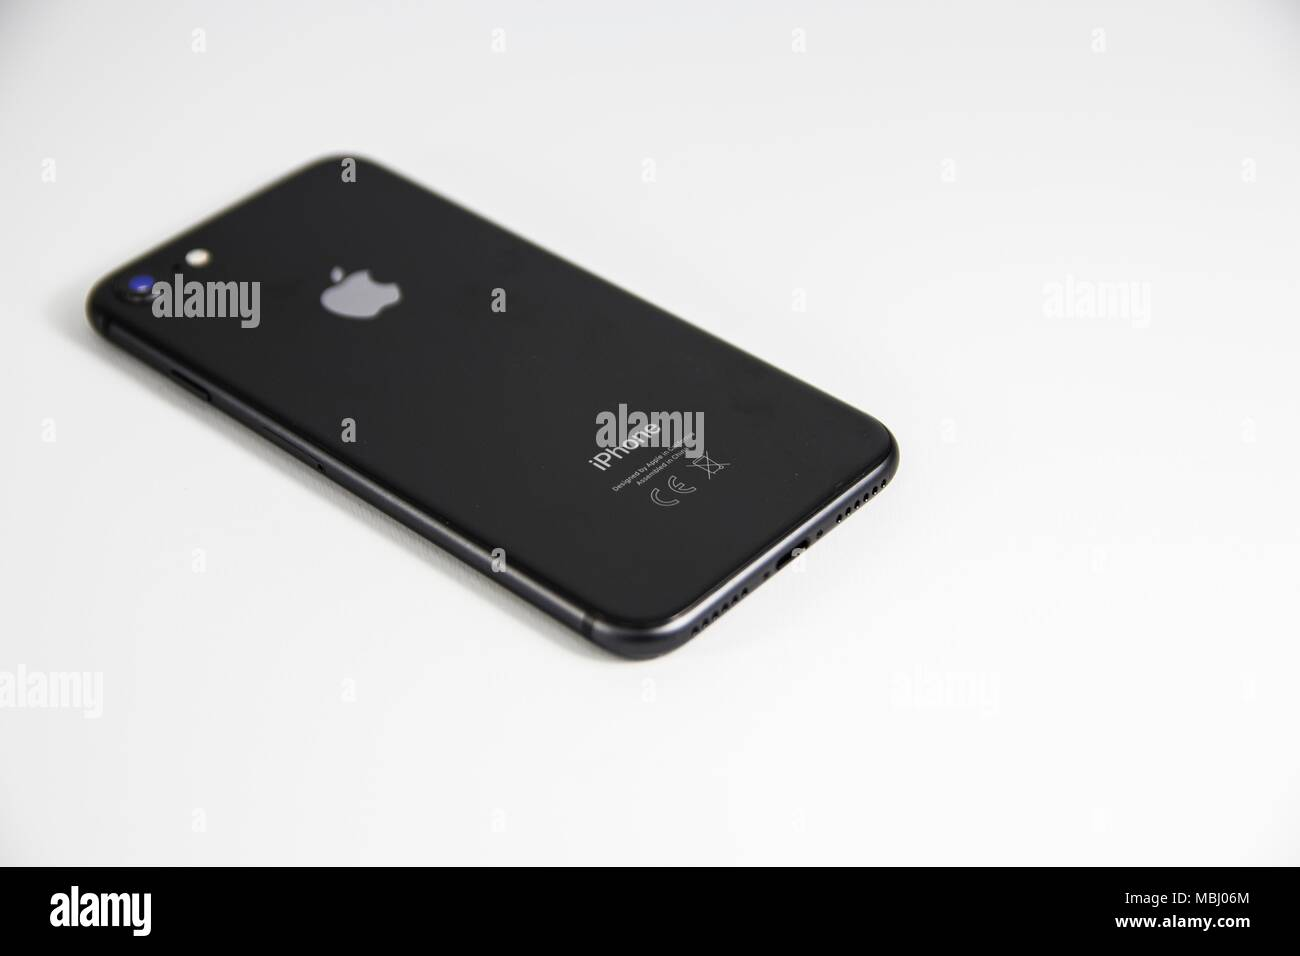 iPhone is a line of high-end smartphones designed and marketed by Apple Inc. It runs the iOS mobile operating system, known until mid-2010 as 'iPhone. - Stock Image